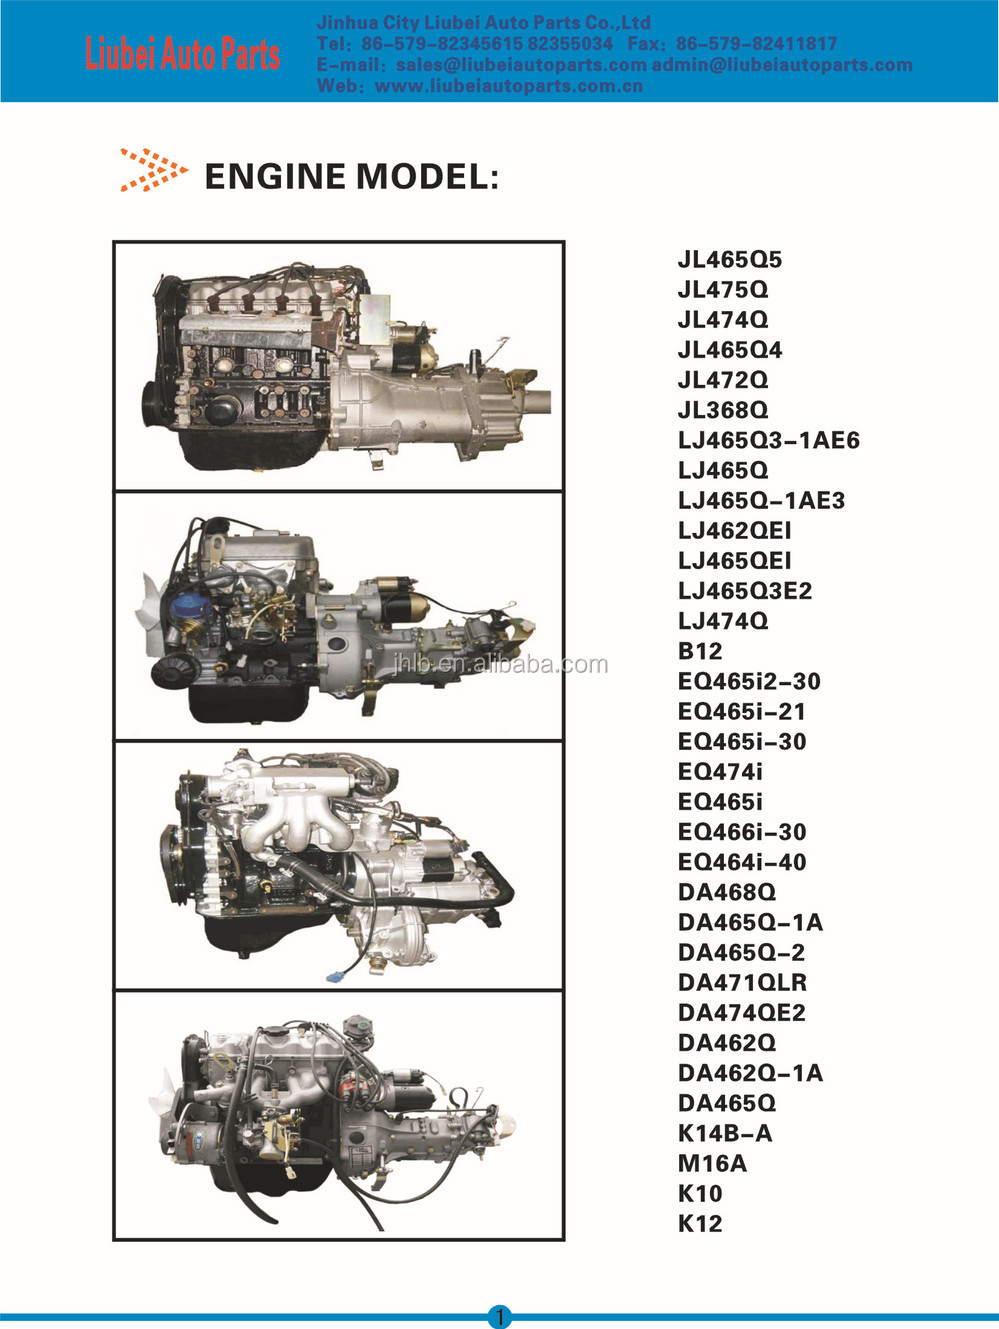 ENGINE PARTS FOR CHINESE CARS 368 465Q, View ENGINE PARTS, DFM ...